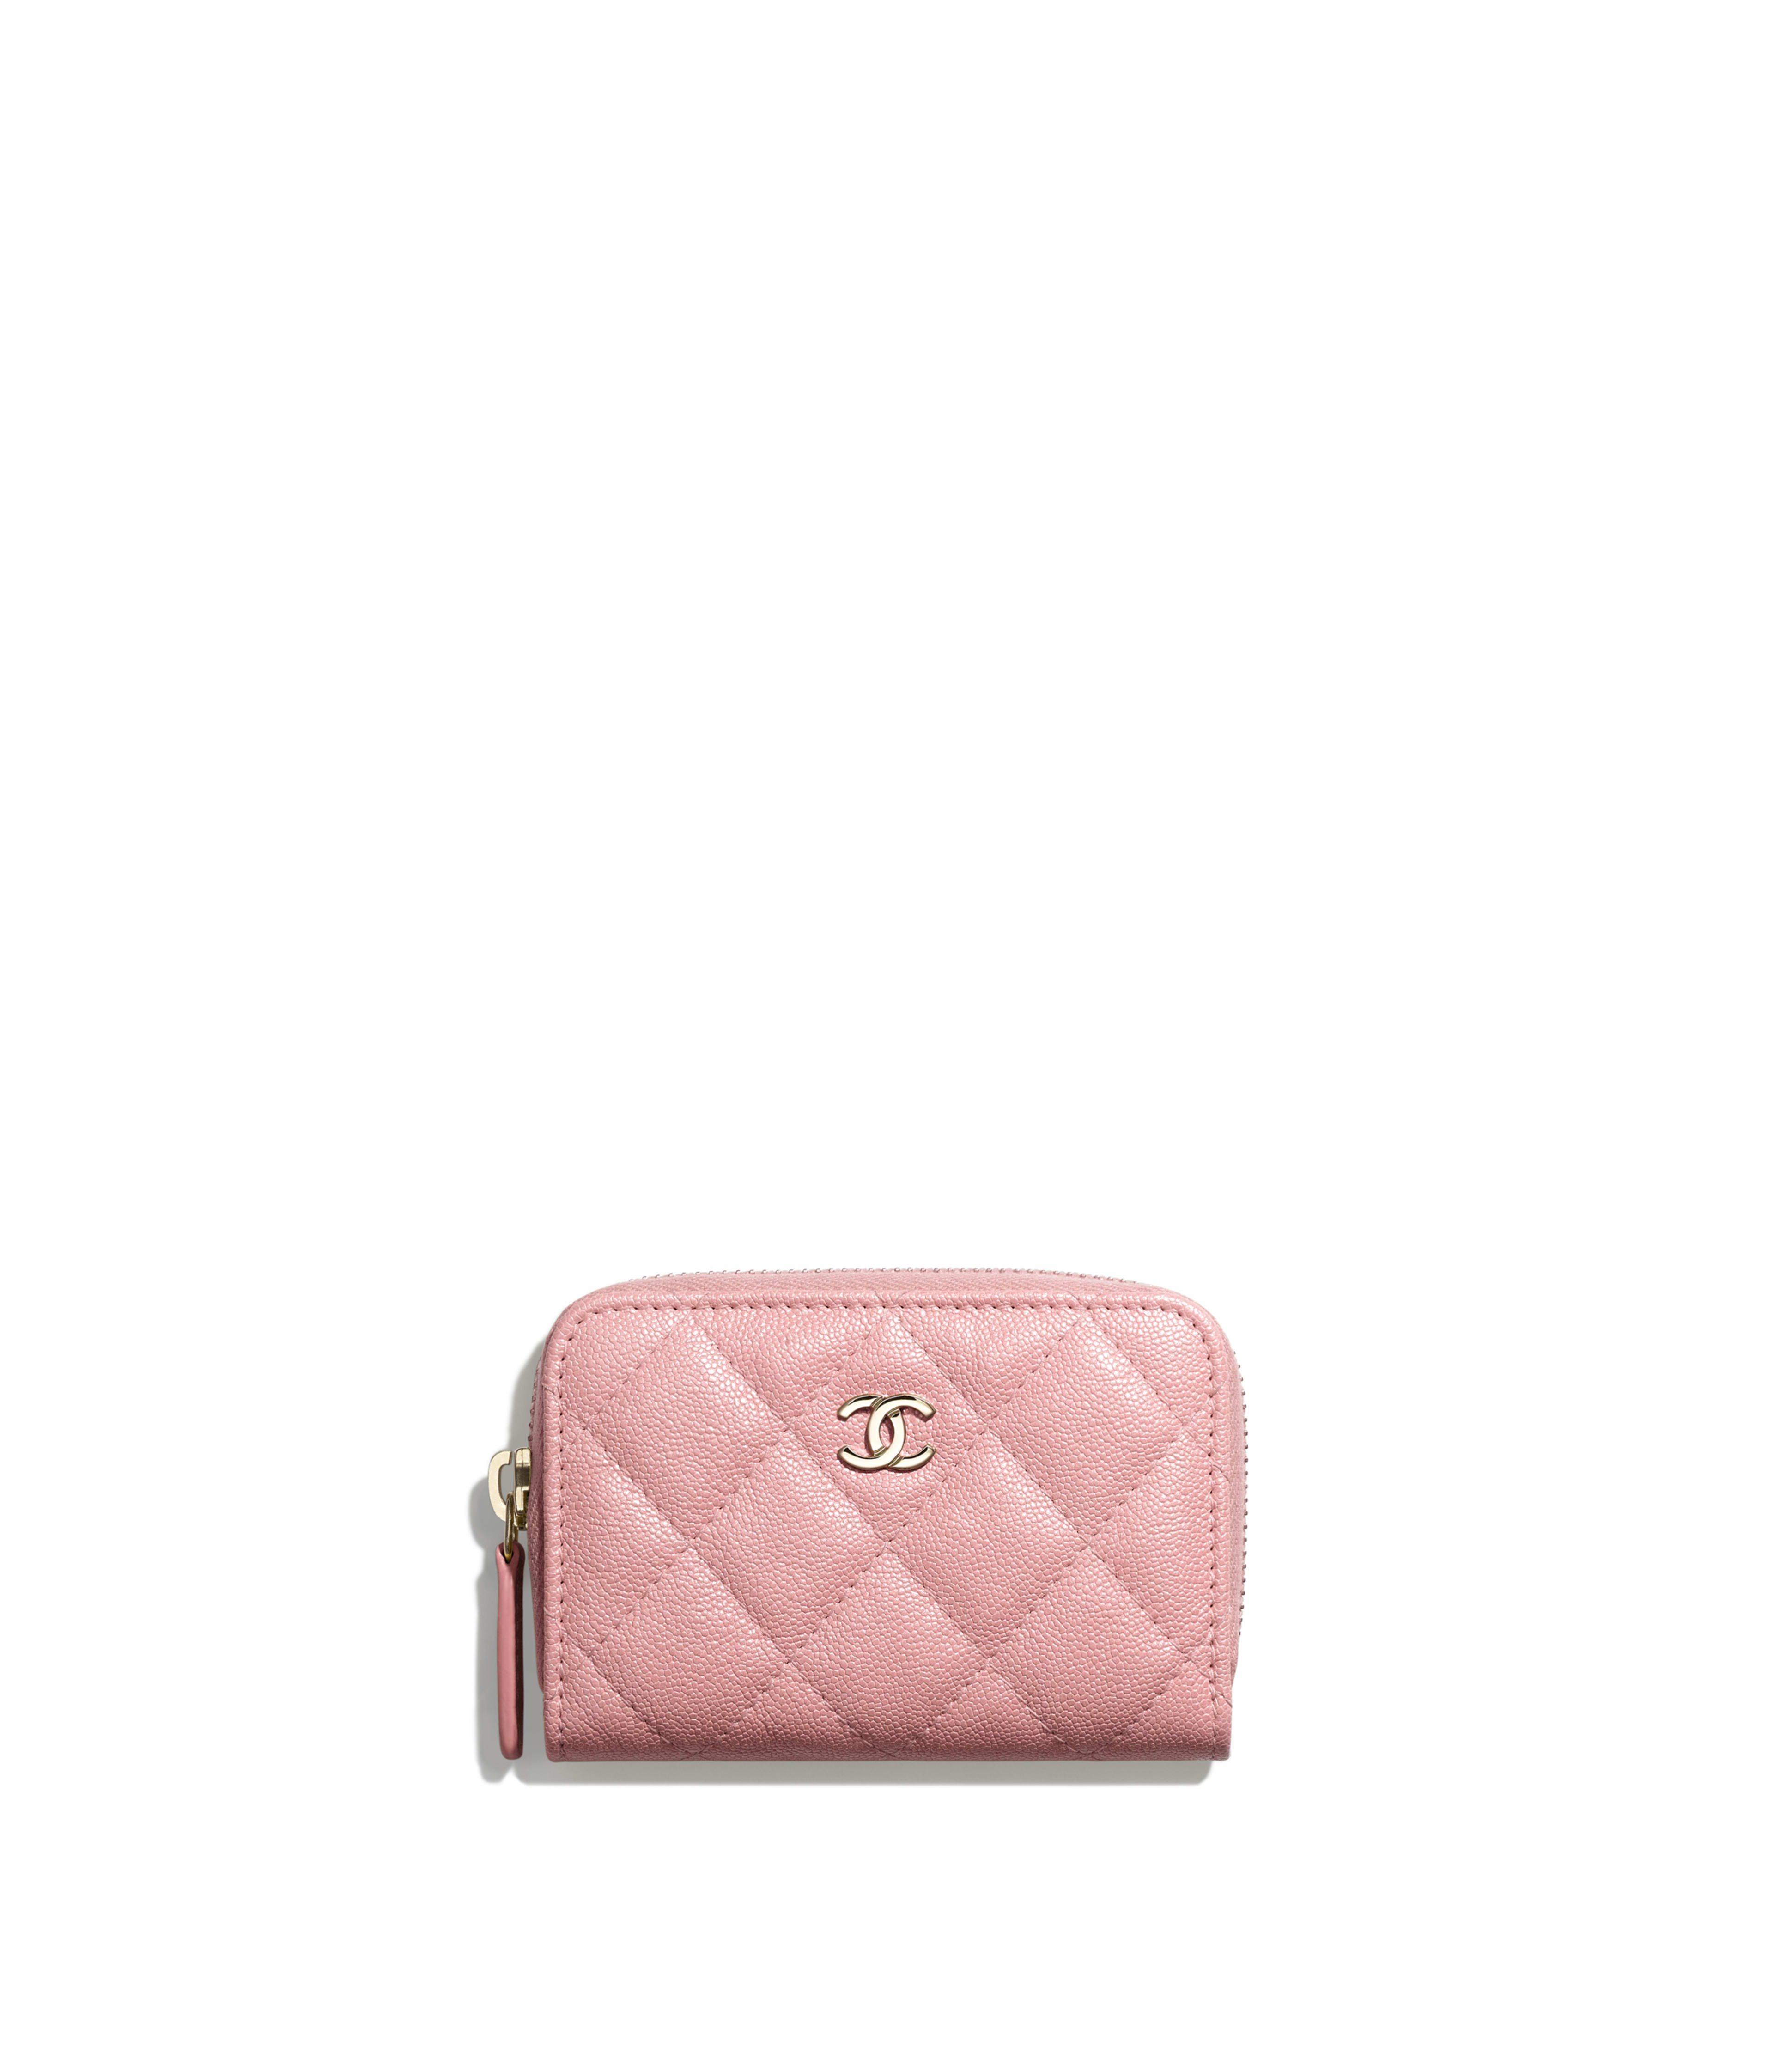 19a05ab9 Card Holders - Small leather goods | CHANEL